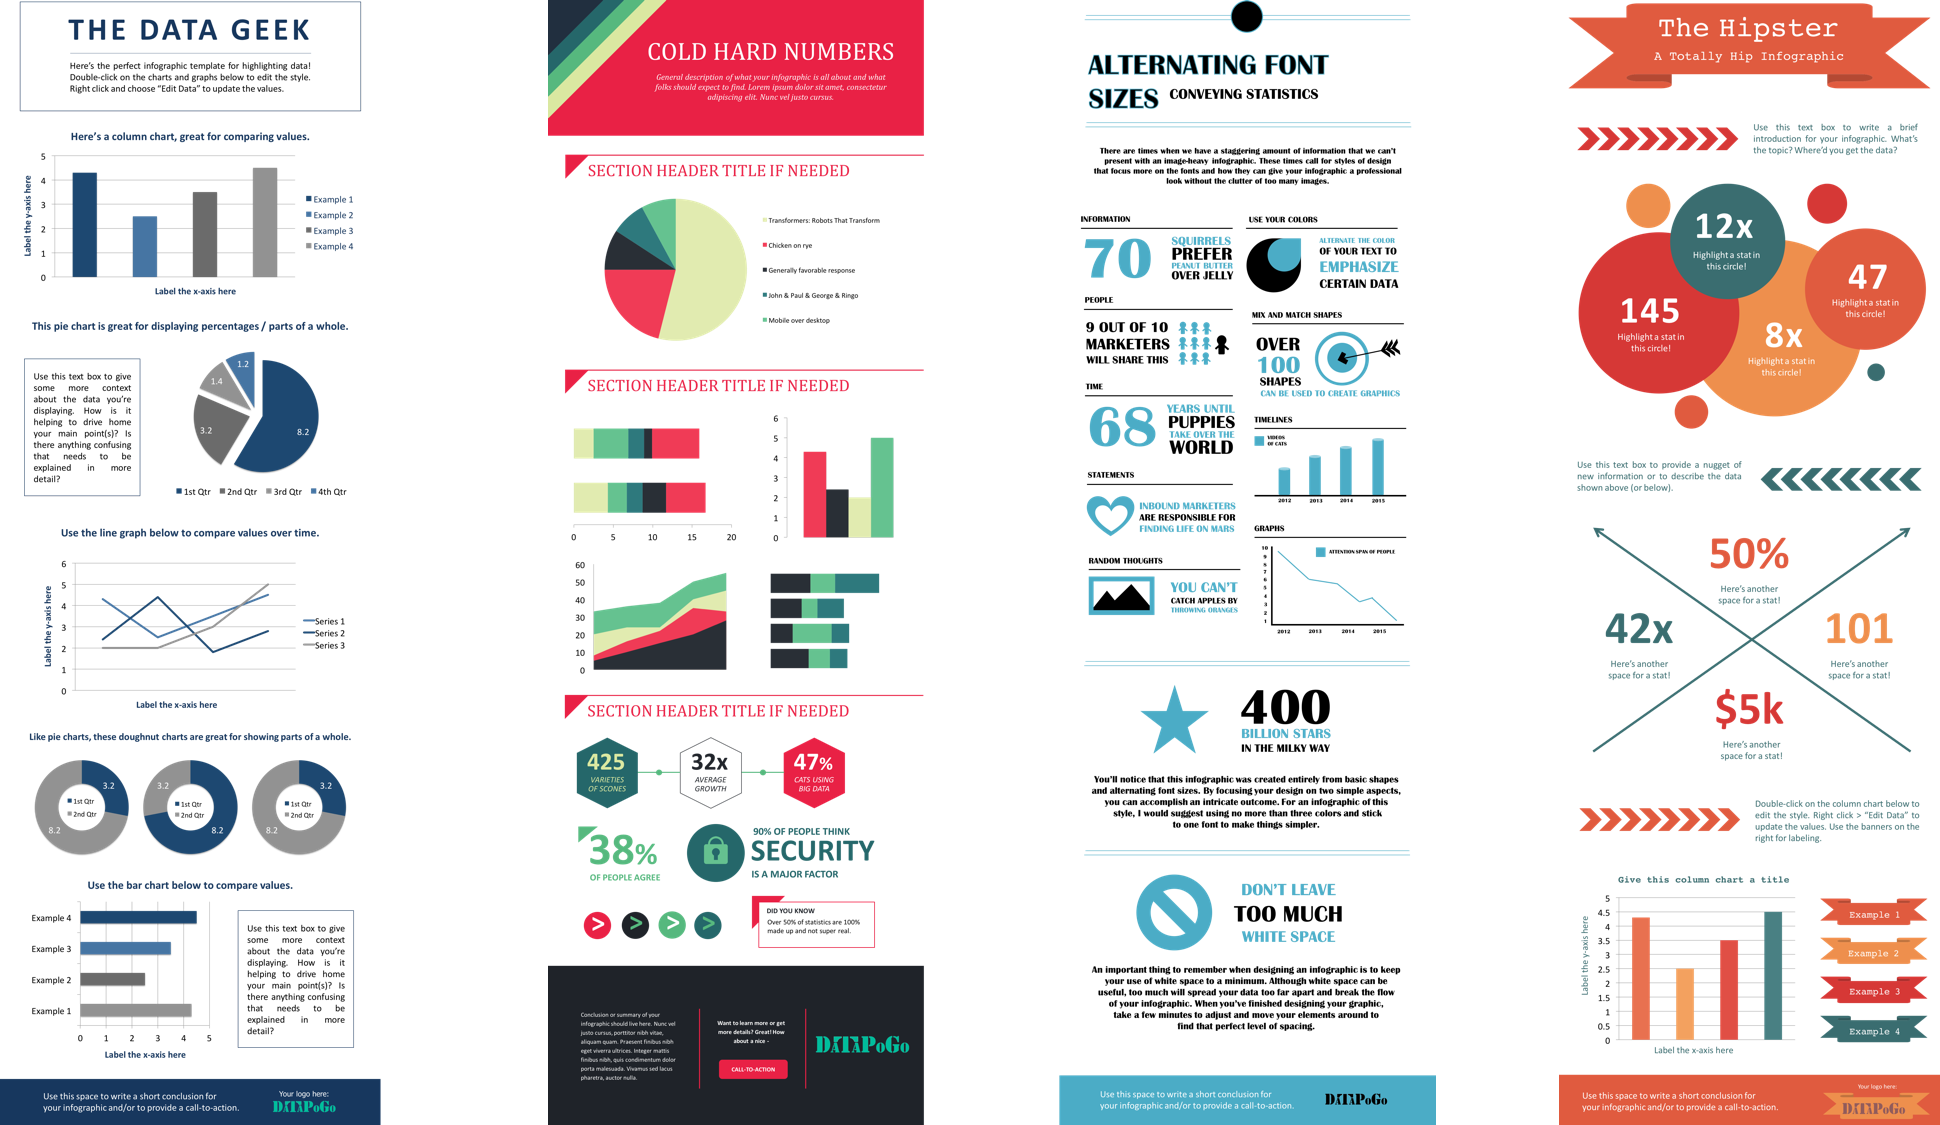 Amazing infographic design